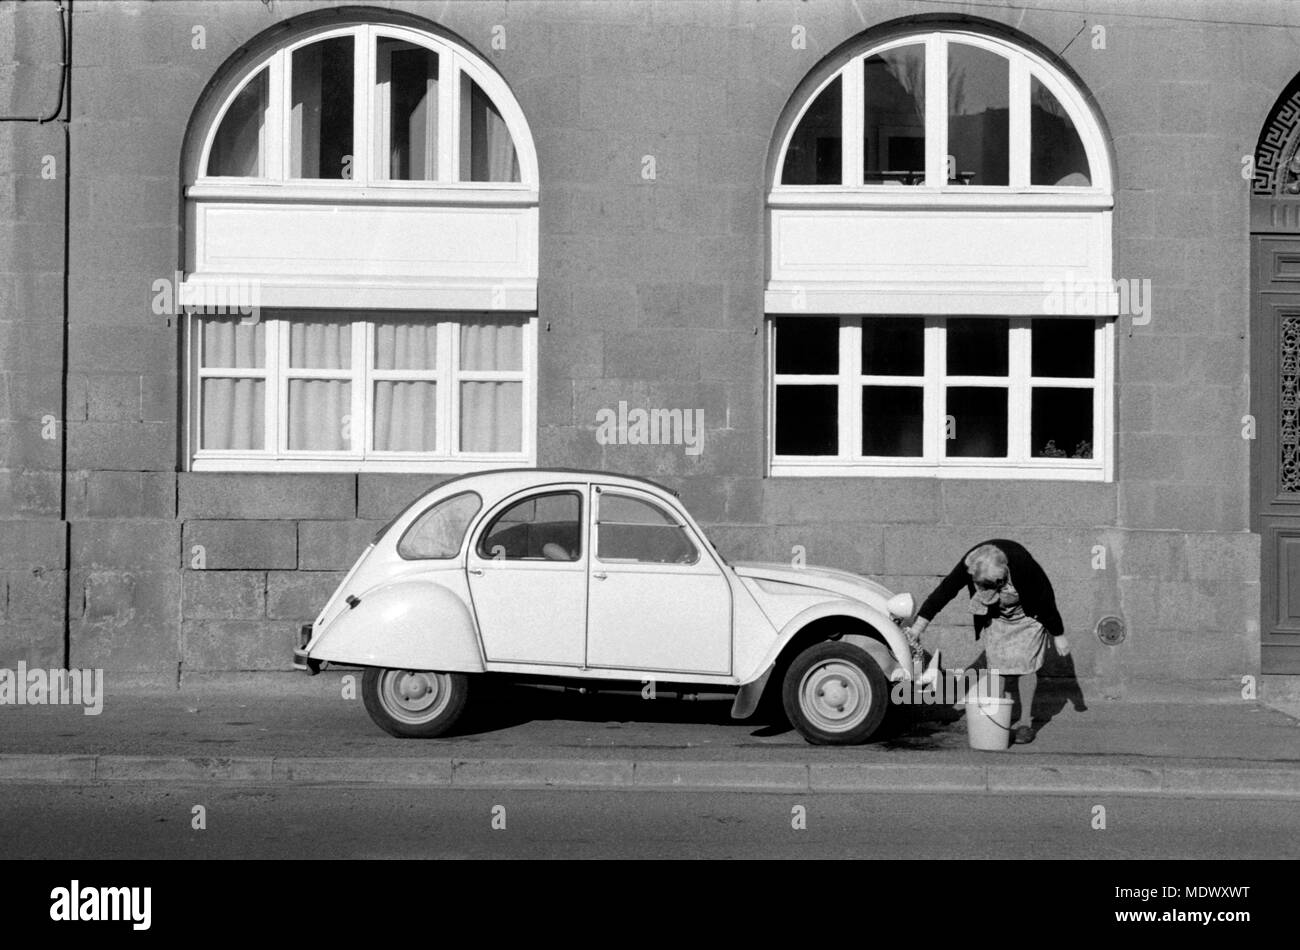 AJAXNETPHOTO. ST.BRIEUC, FRANCE. - CLEAN UP - CLEANING A CITROEN DEUX CHEVAUX 2CV ON THE SIDEWALK.  PHOTO:JONATHAN EASTLAND/AJAX REF:9112_36001 - Stock Image